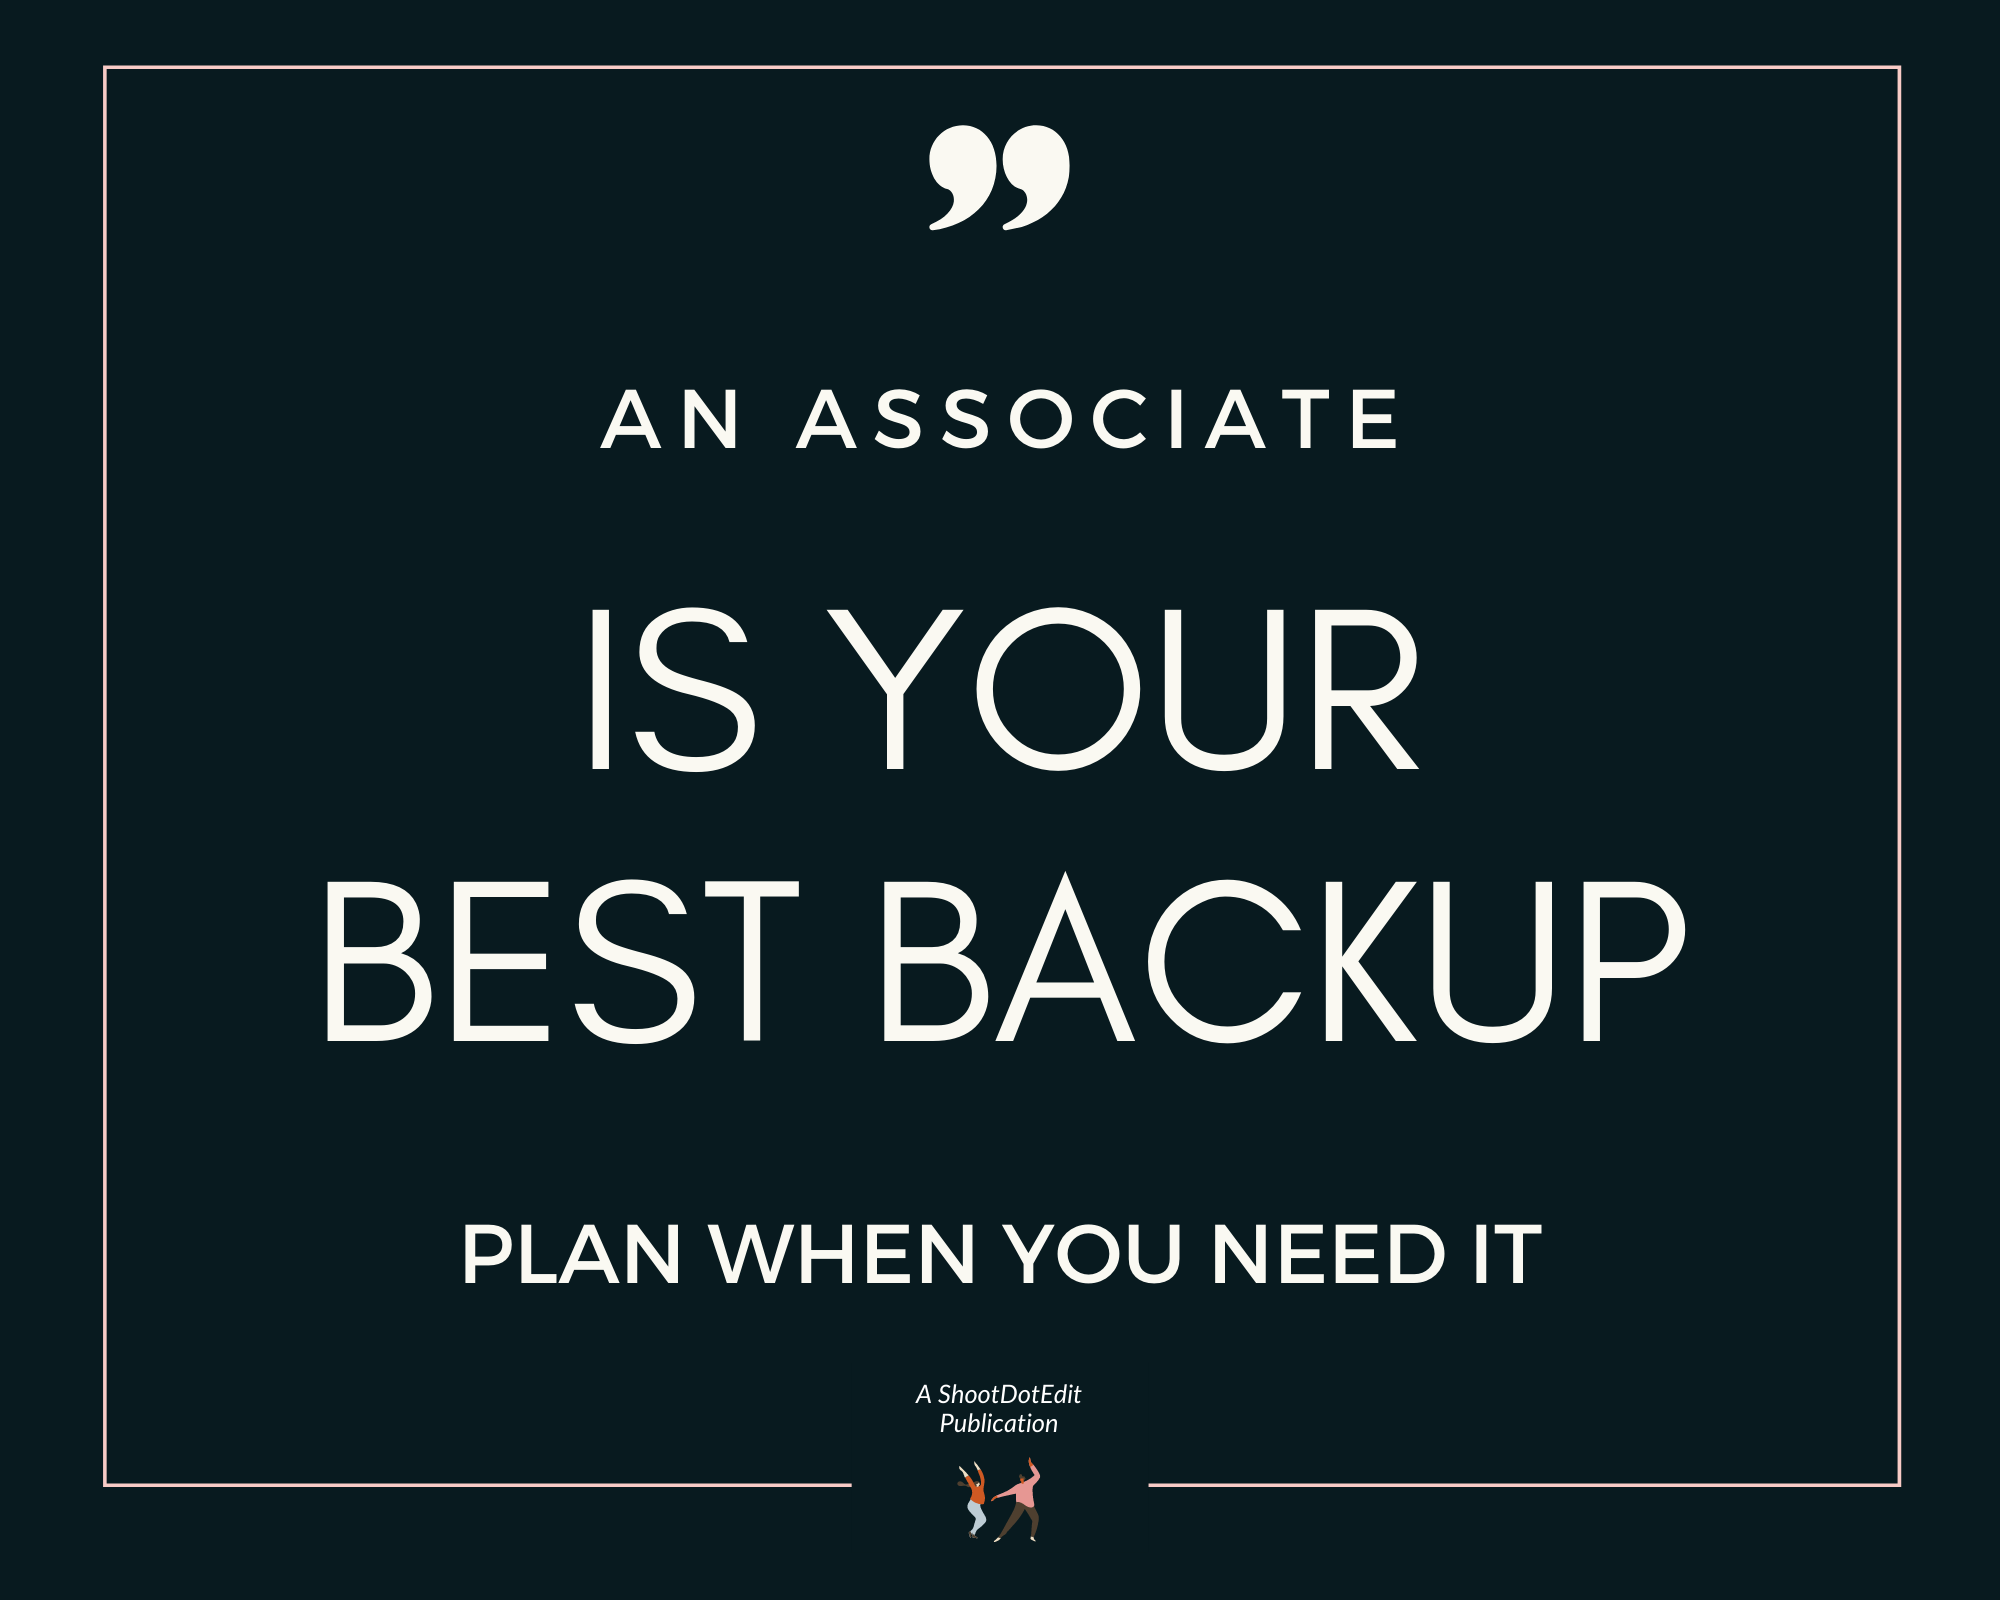 Infographic stating an associate is your best backup plan when you need it